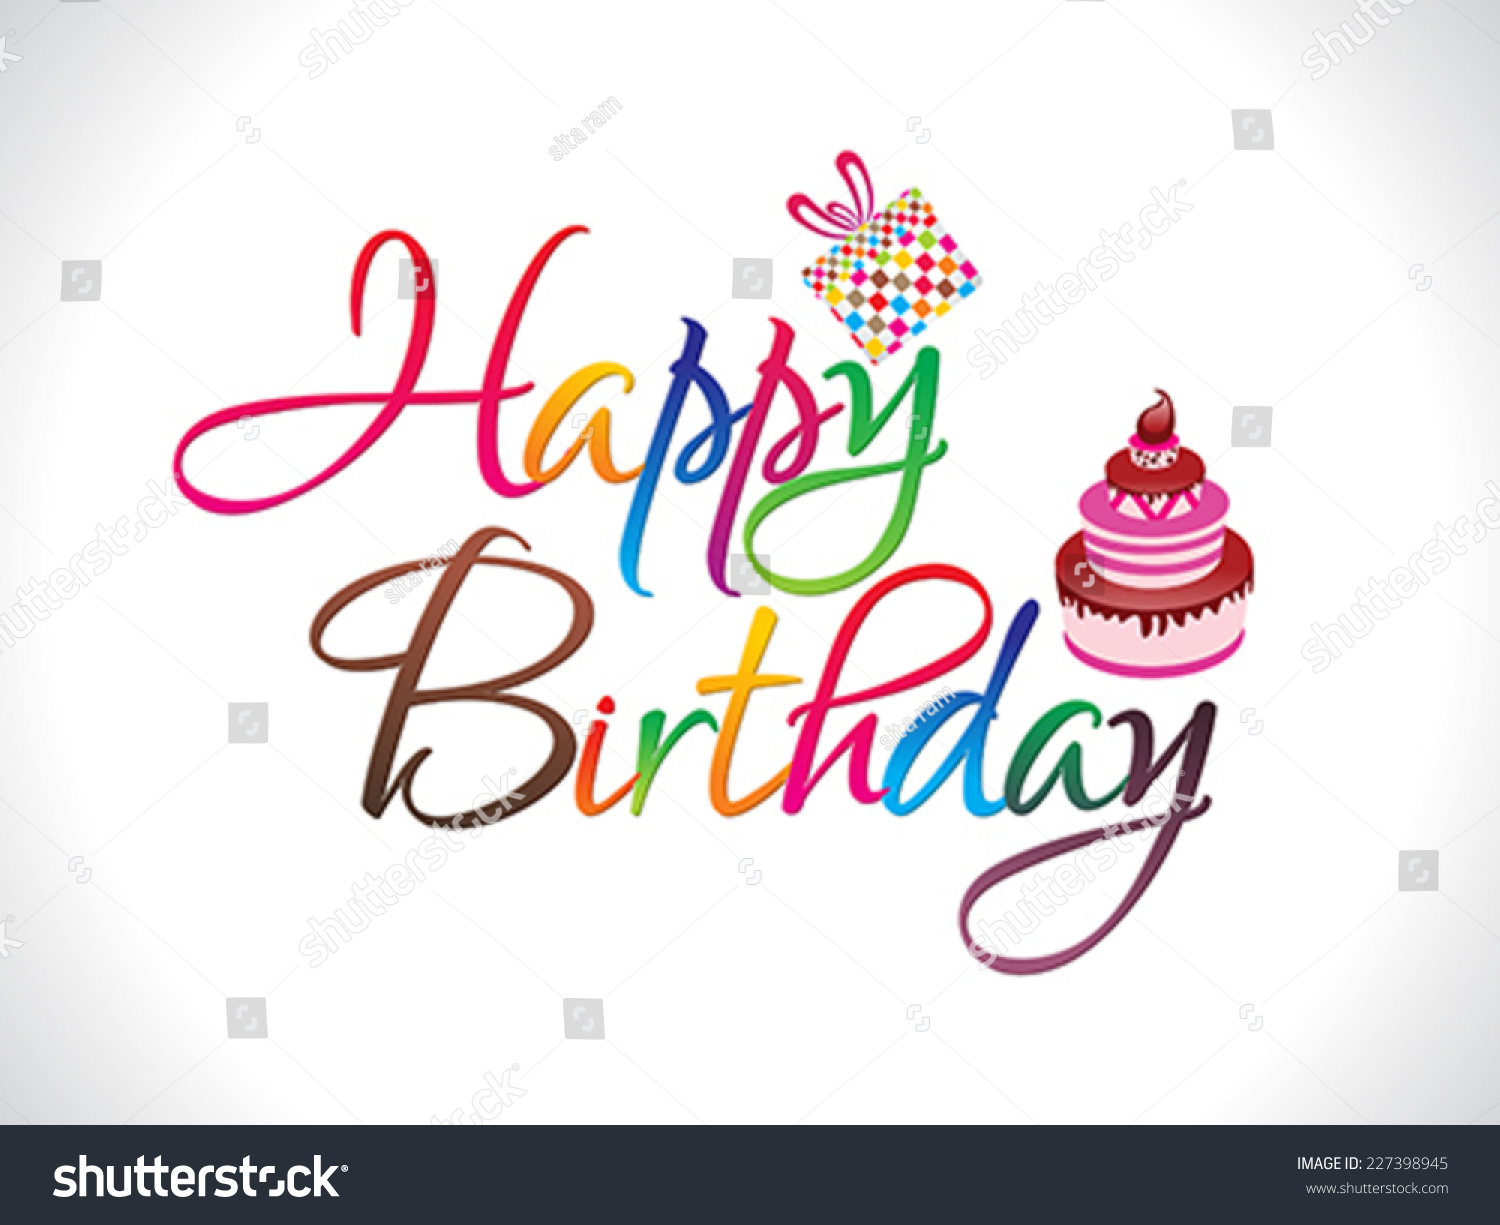 Happy Birthday PNG Images  Vectors and PSD Files  Free